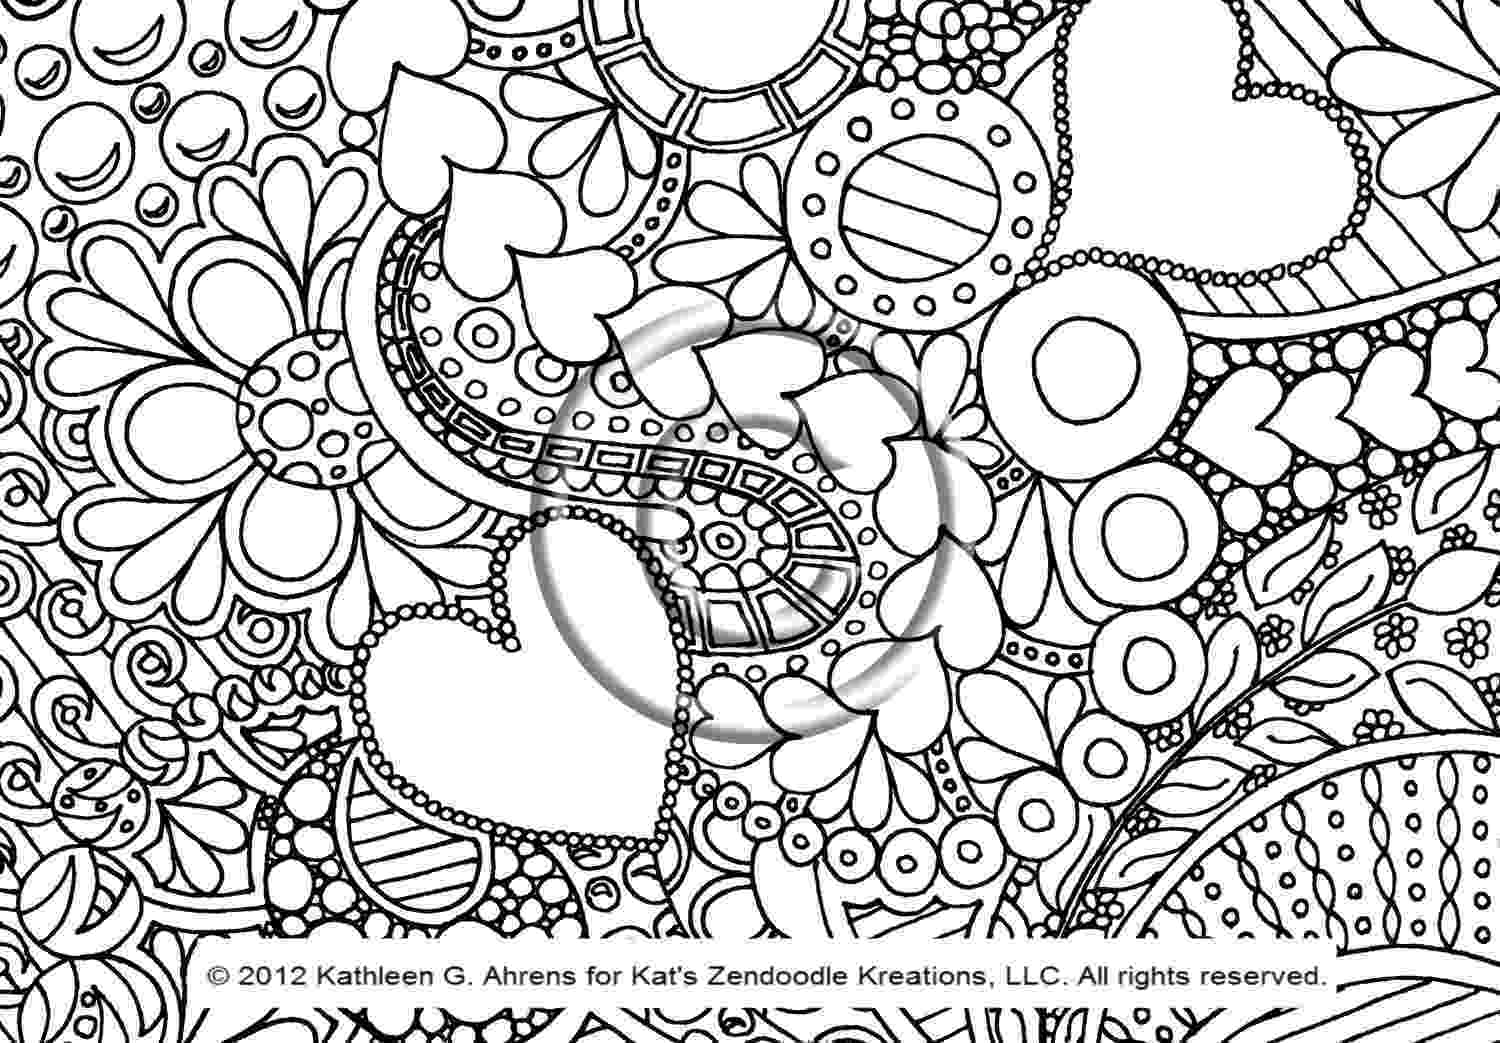 coloring patterns calming patterns for adults who color live your life in patterns coloring